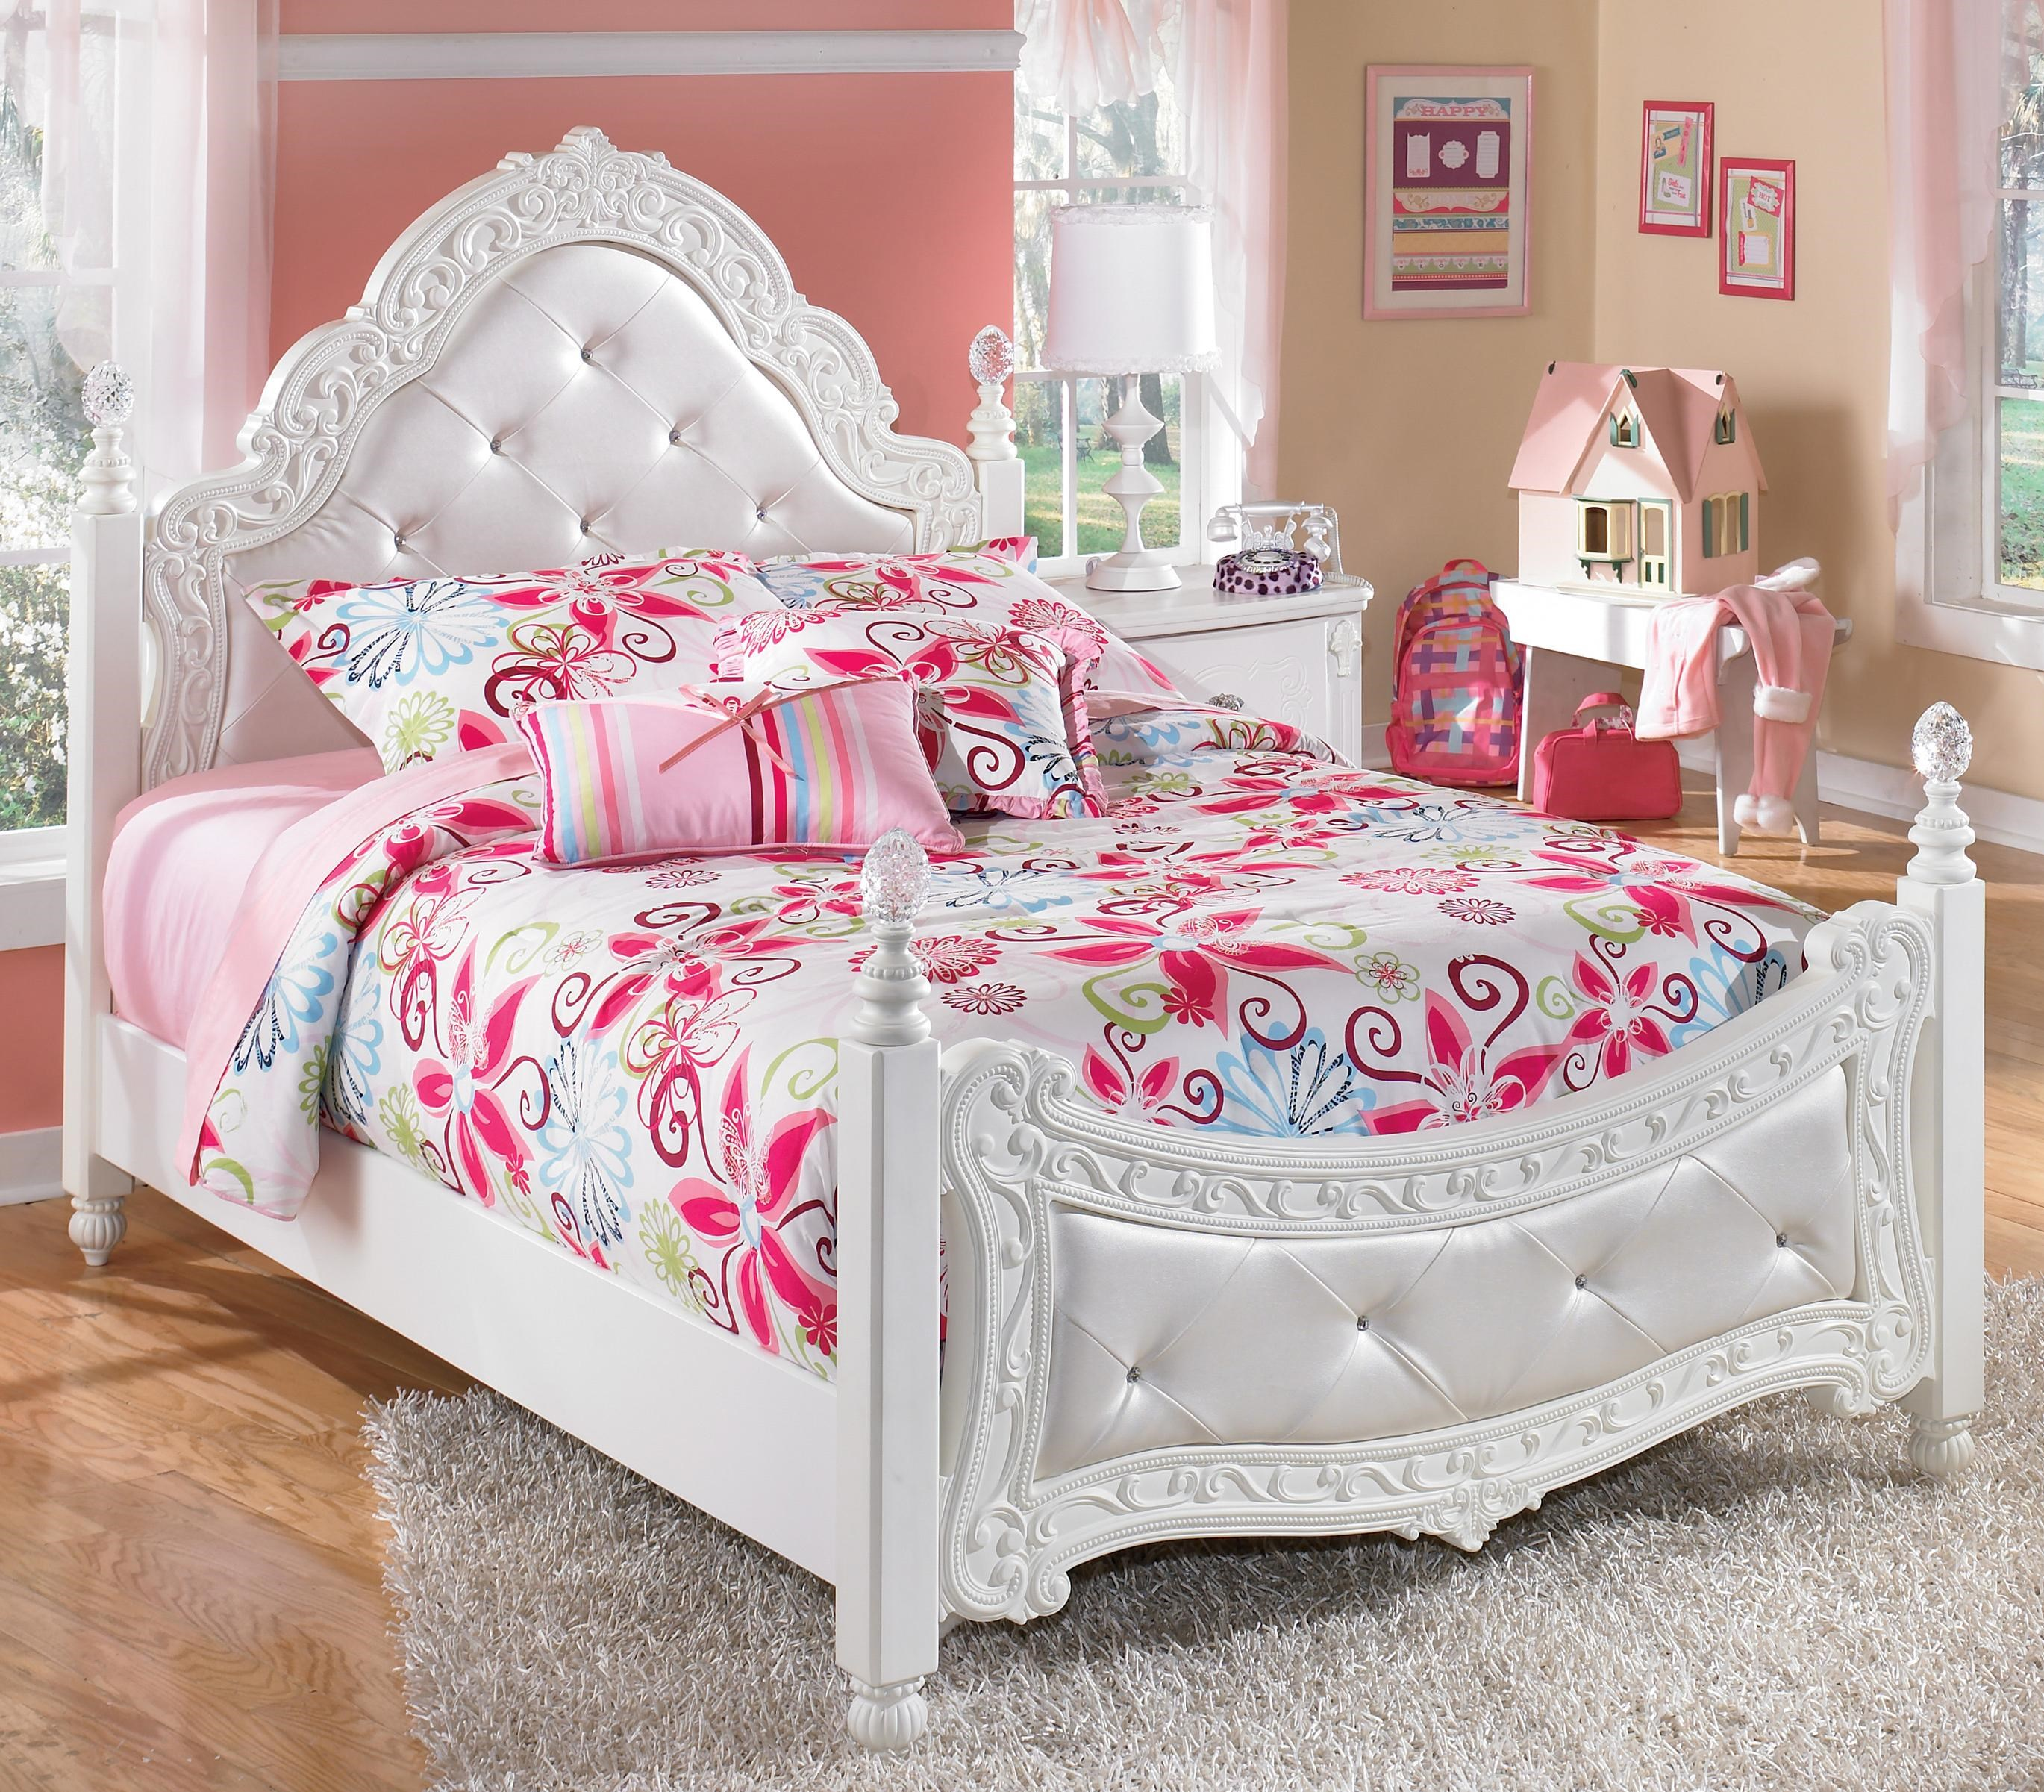 Signature Design By Ashley Lilu0027 Darling Full Ornate Poster Bed With Tufted  Headboard U0026 Footboard